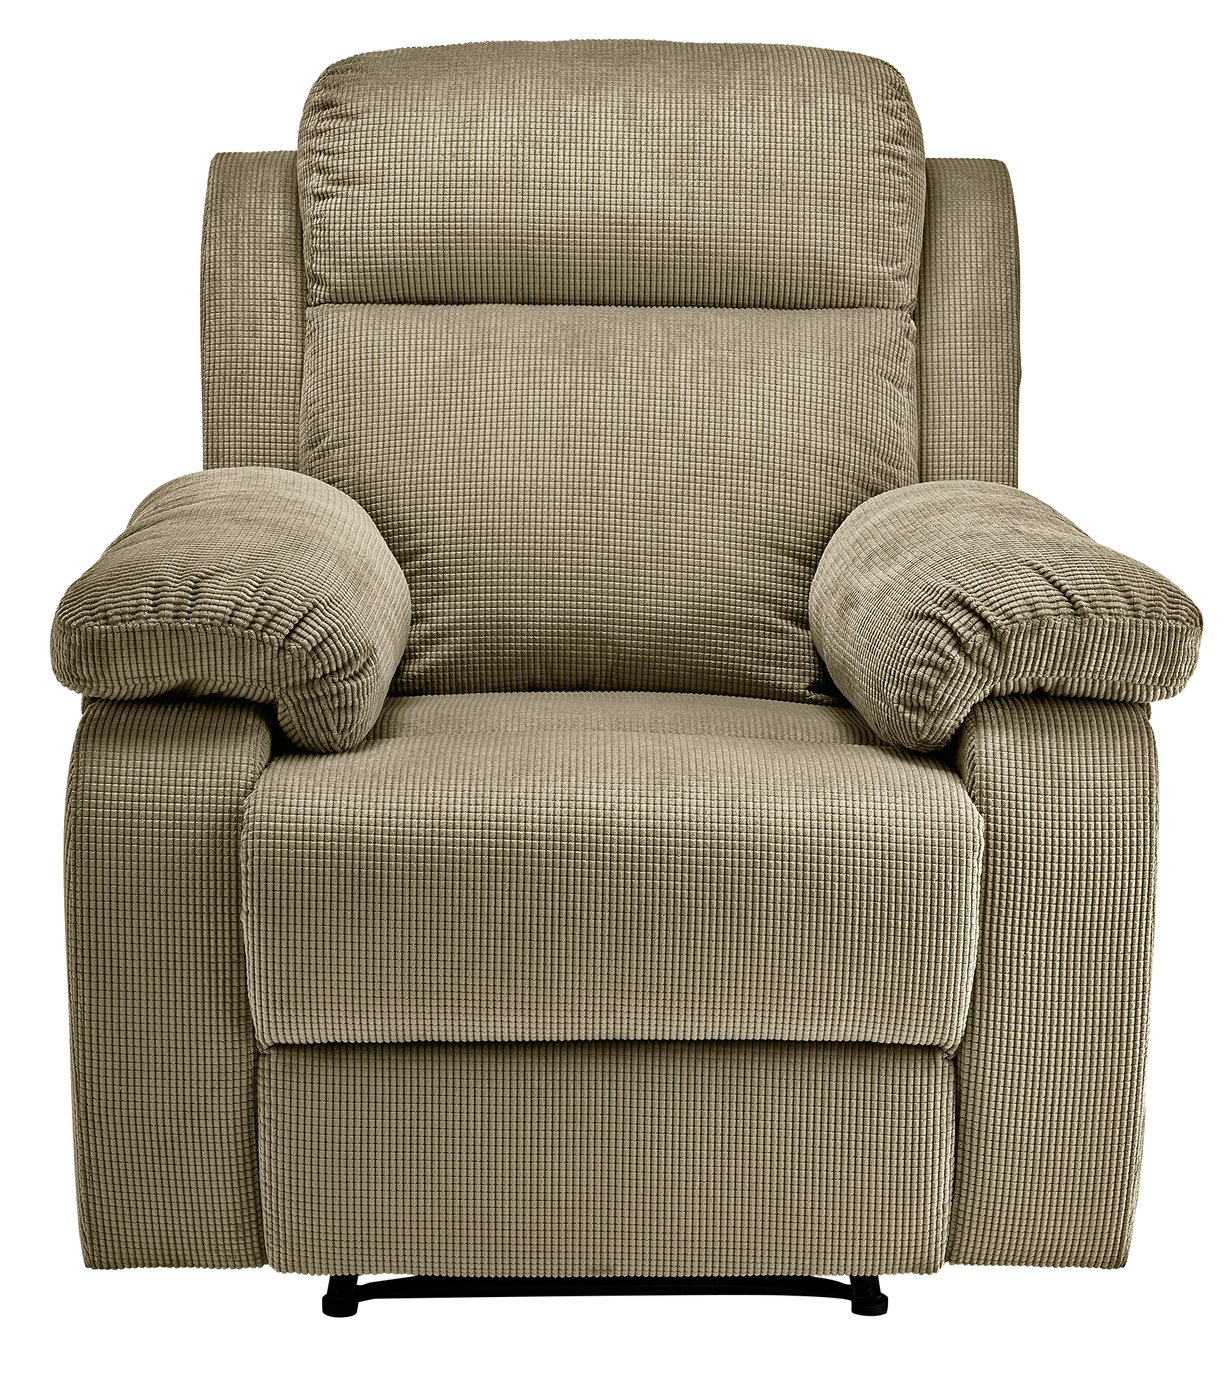 power recliner chairs uk cheap beach collection new bradley chair charcoal